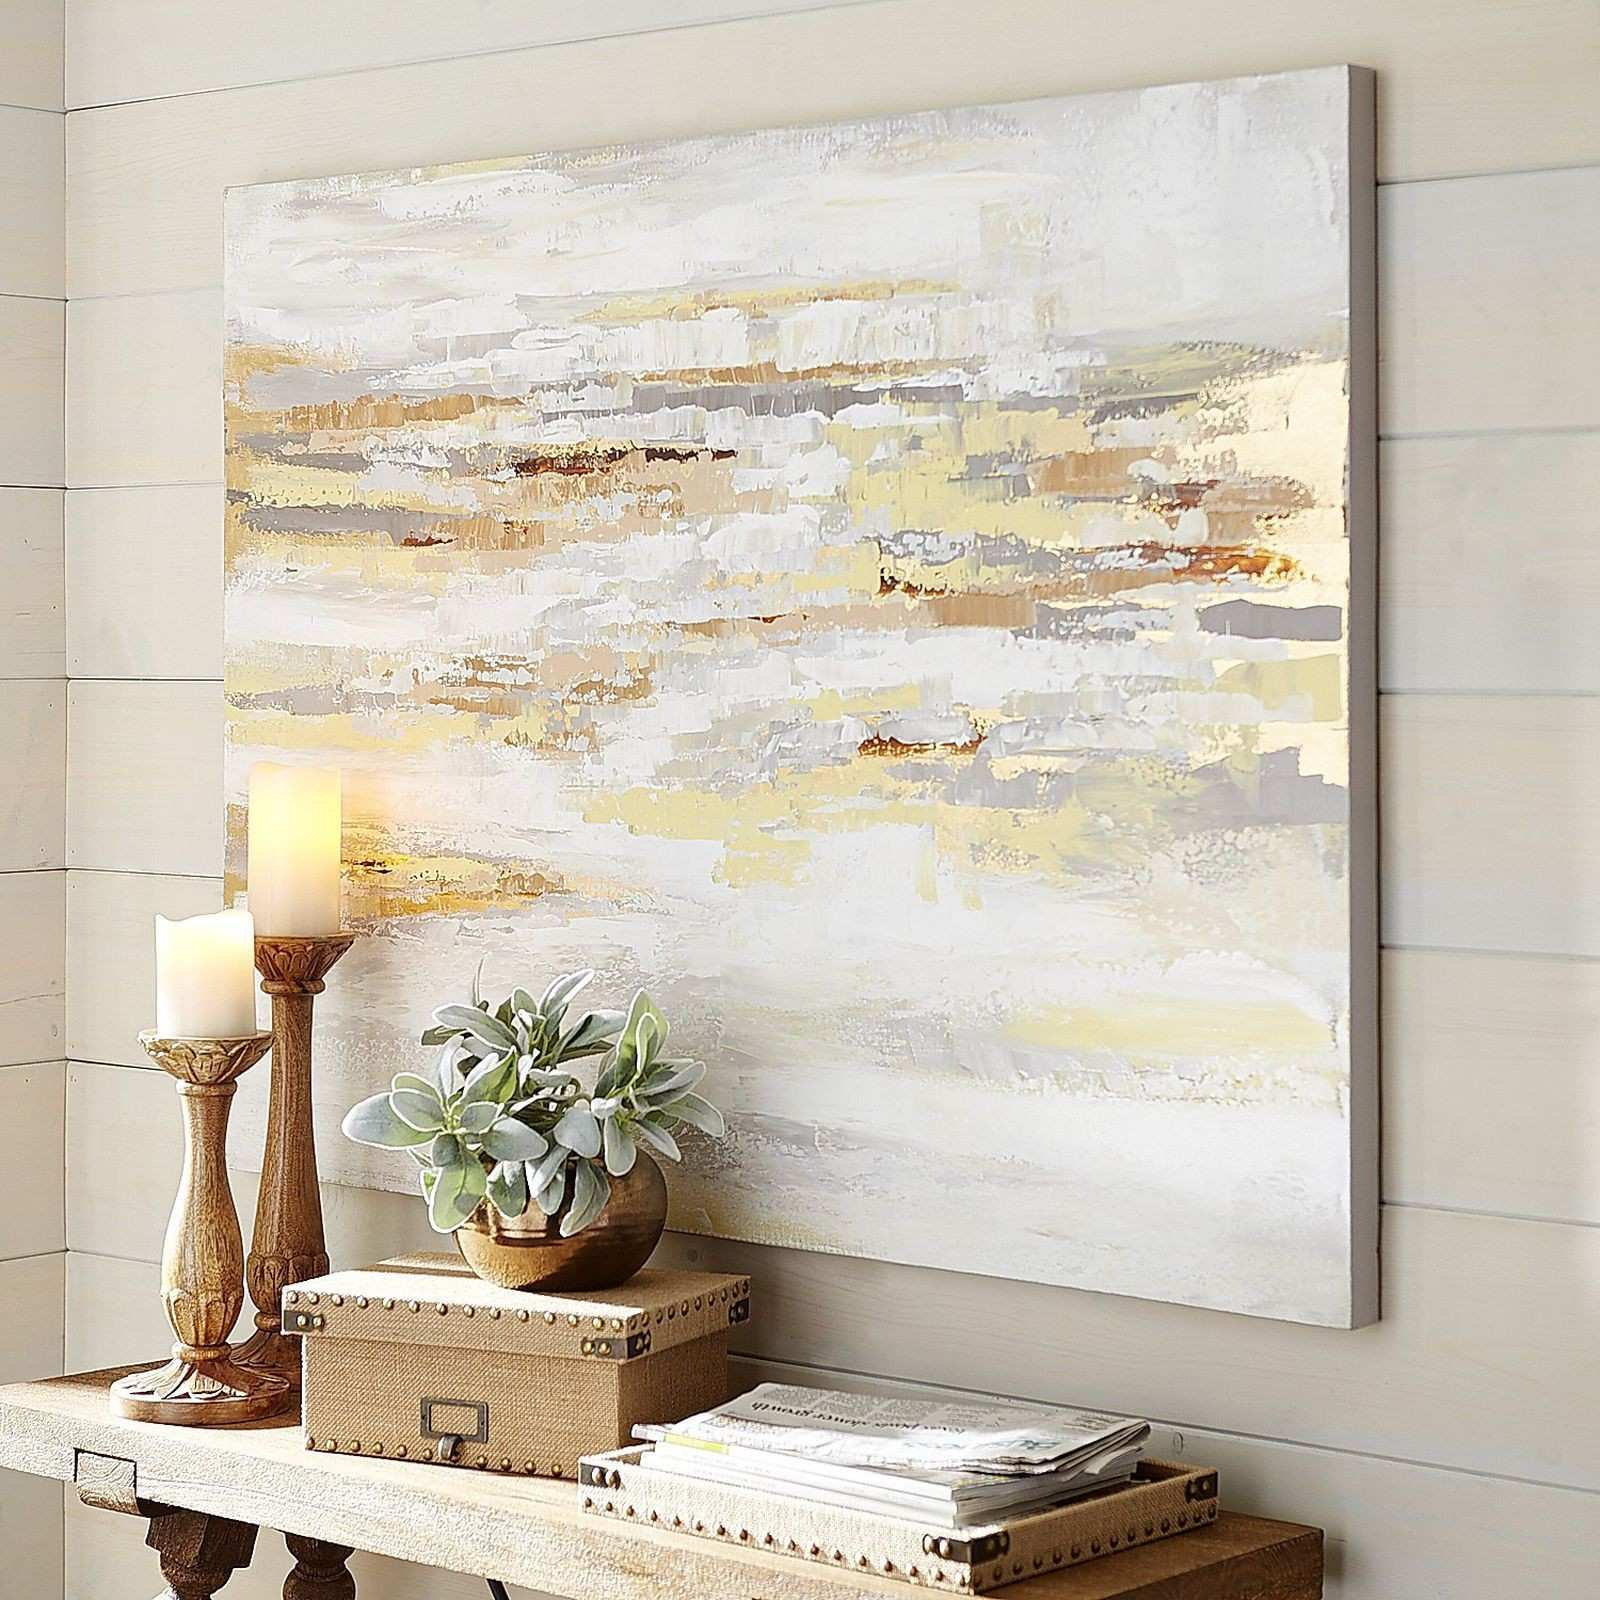 Muted shades multiply your options when considering wall art for